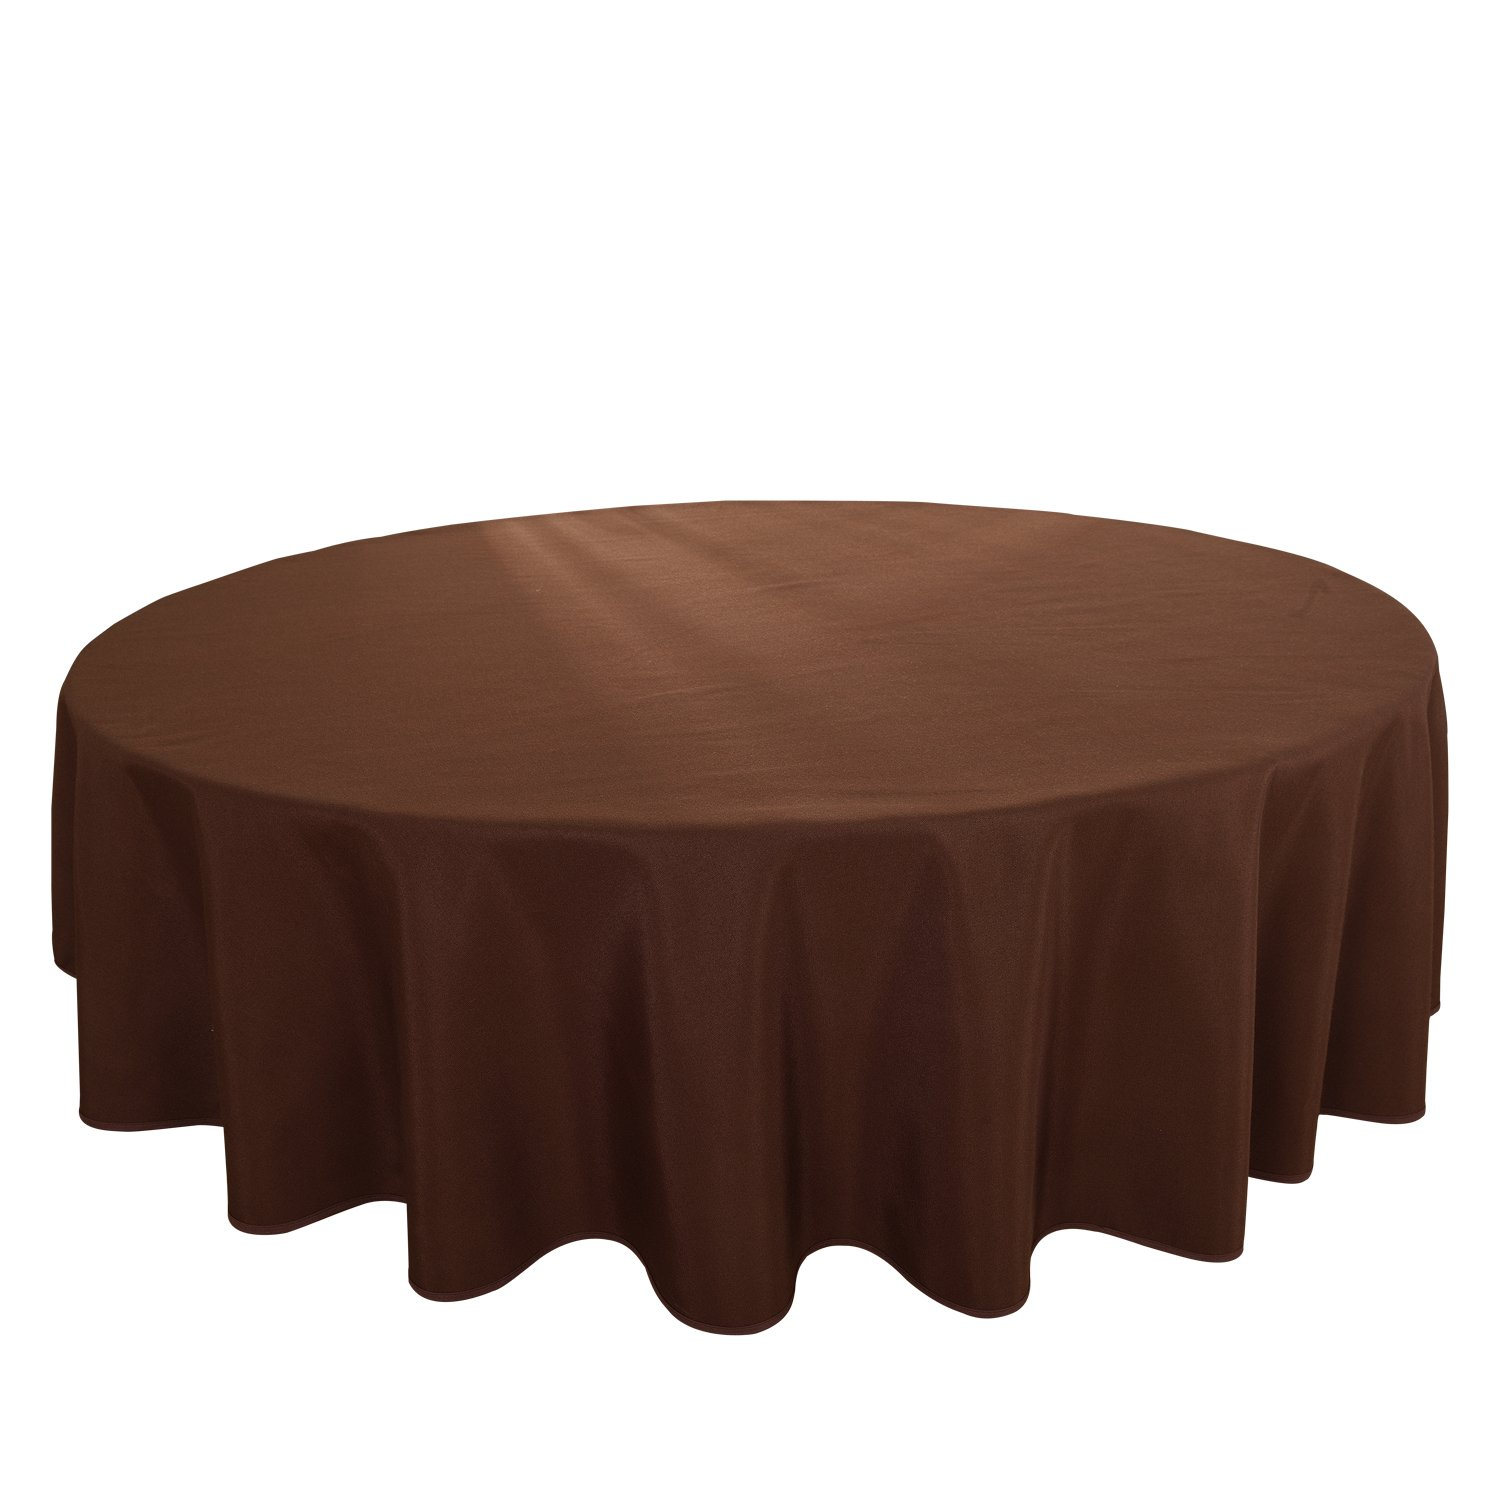 HIGHFLY Linen Round Tablecloth 90 inch Waterproof Coffee Tablecloth Wedding Party Restaurant